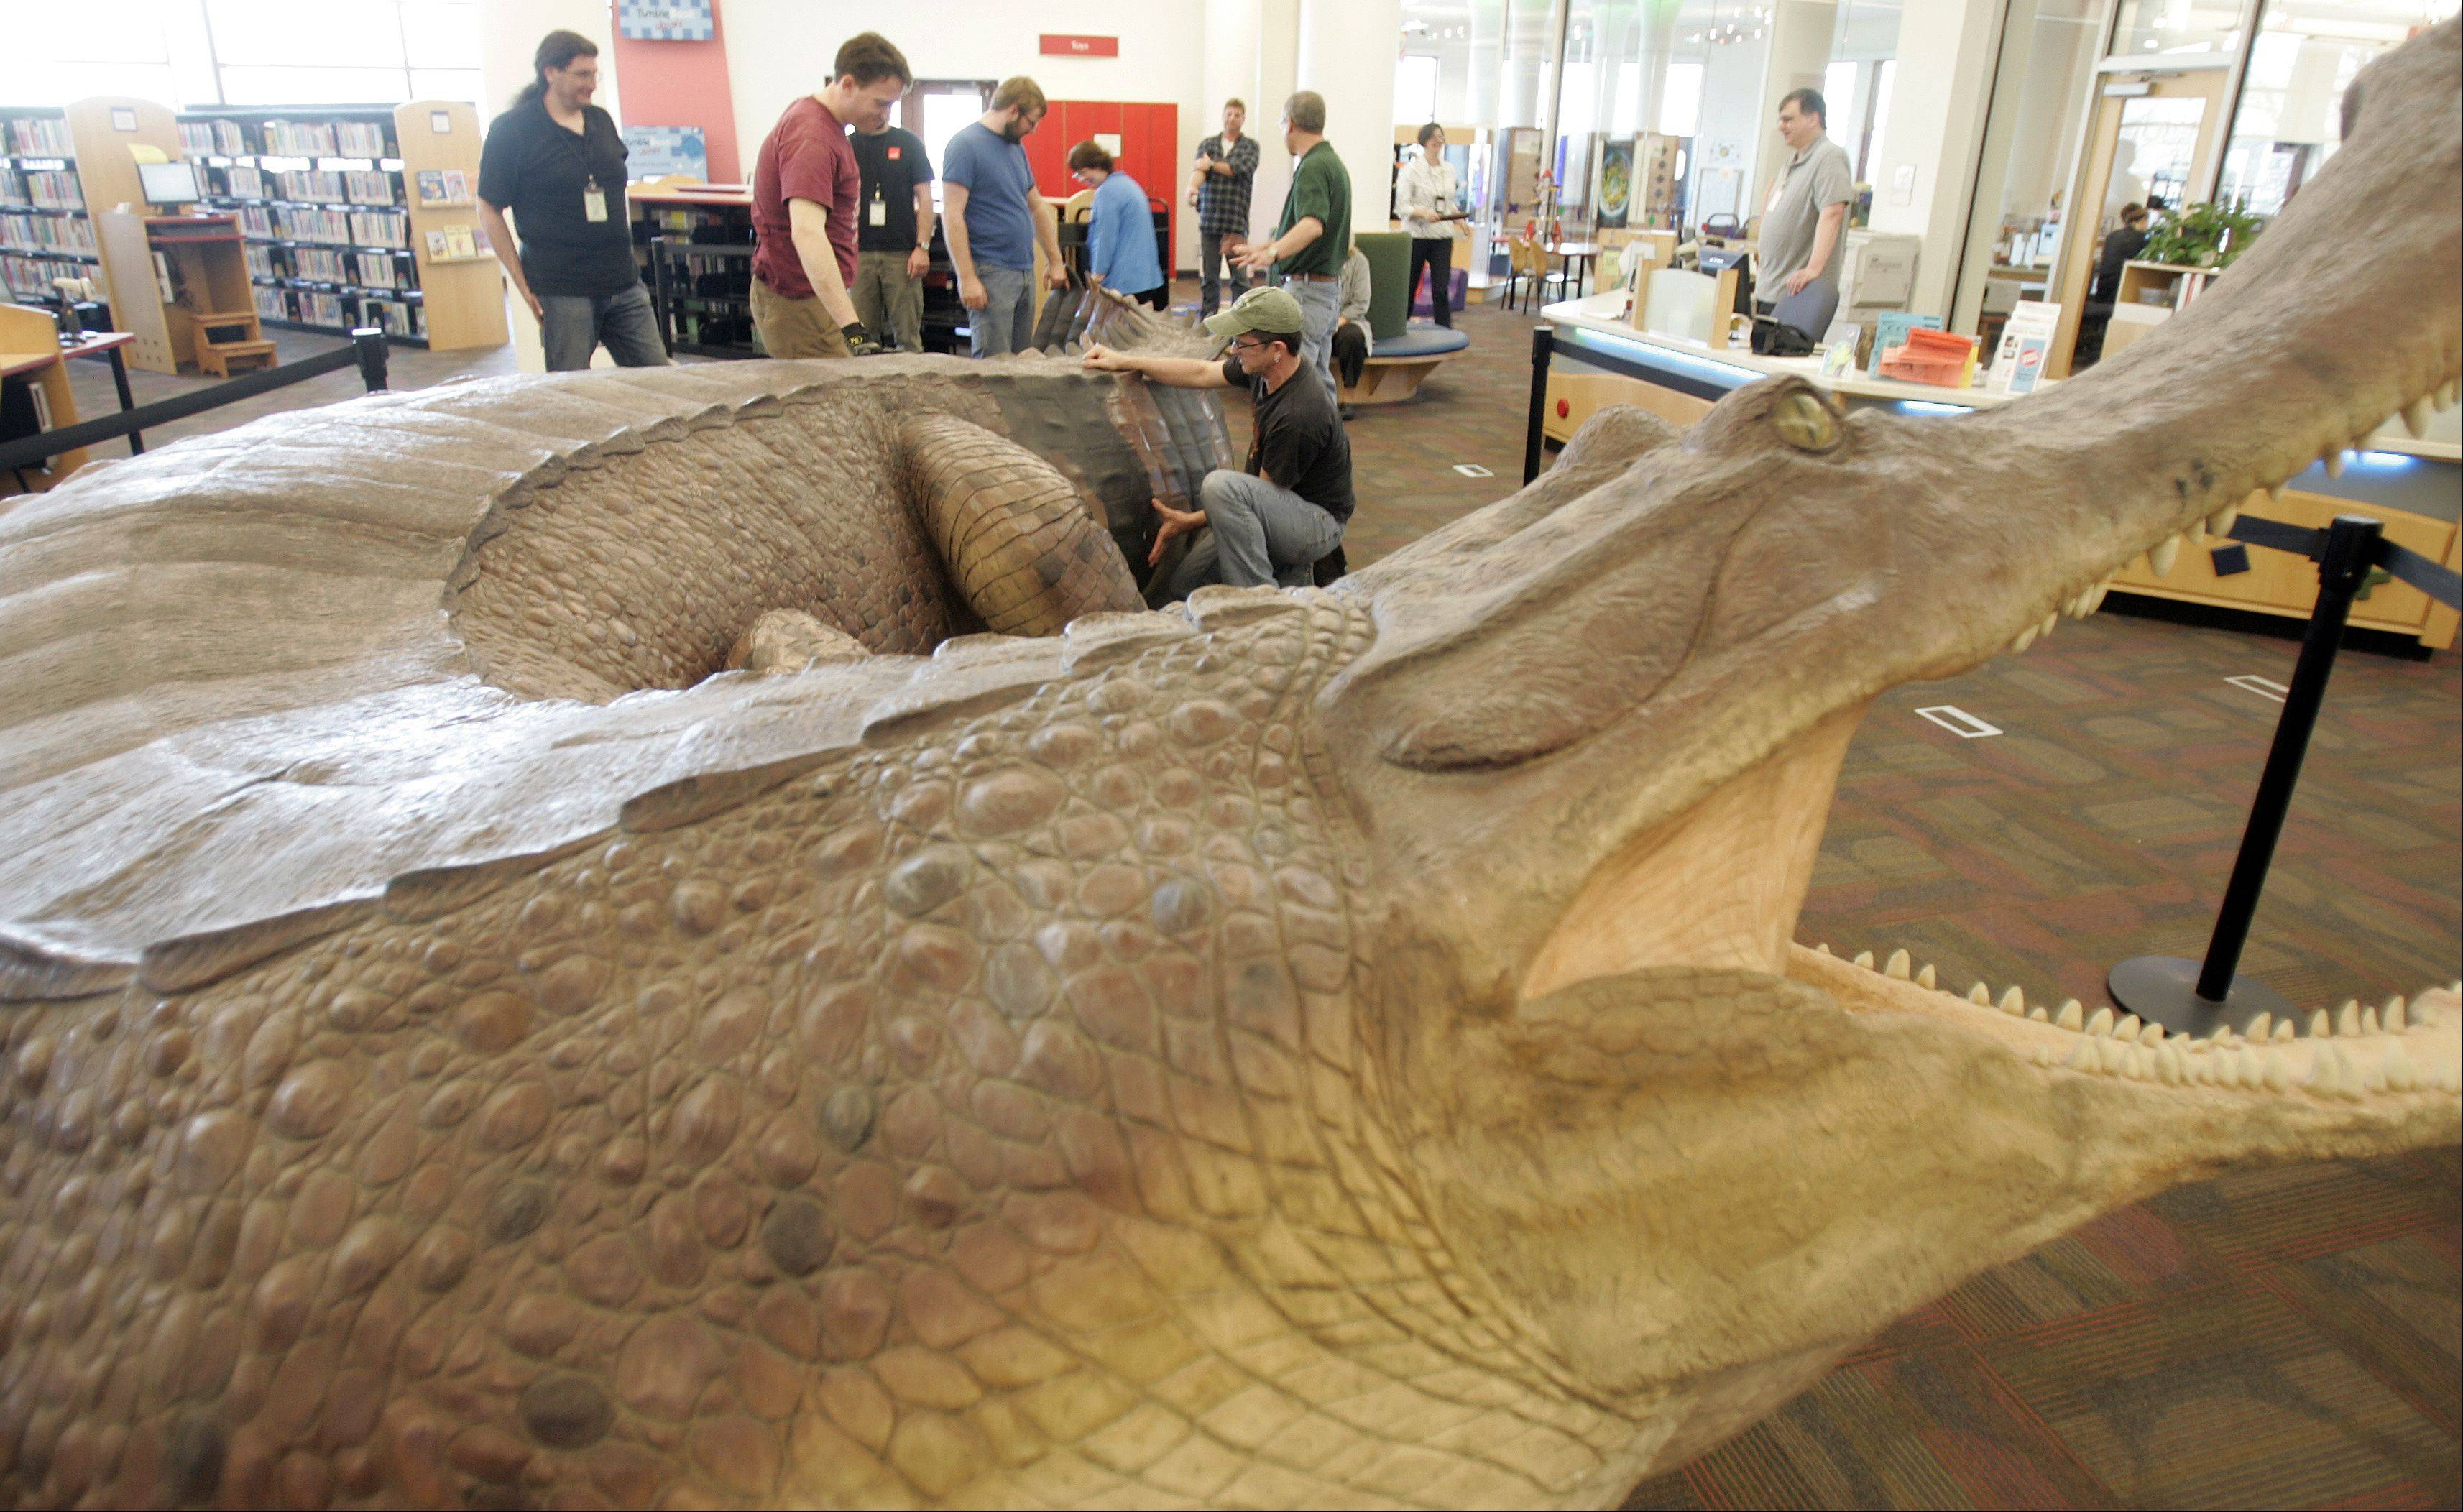 People gather around a super croc exhibit at the Gail Borden Library in Elgin Tuesday. The exhibit, which has been all over the world, is being shown for the first time at a library with this summer's stop at Elgin. It took two days to assemble the model of the prehistoric creature. The skull on the super croc is six feet long.